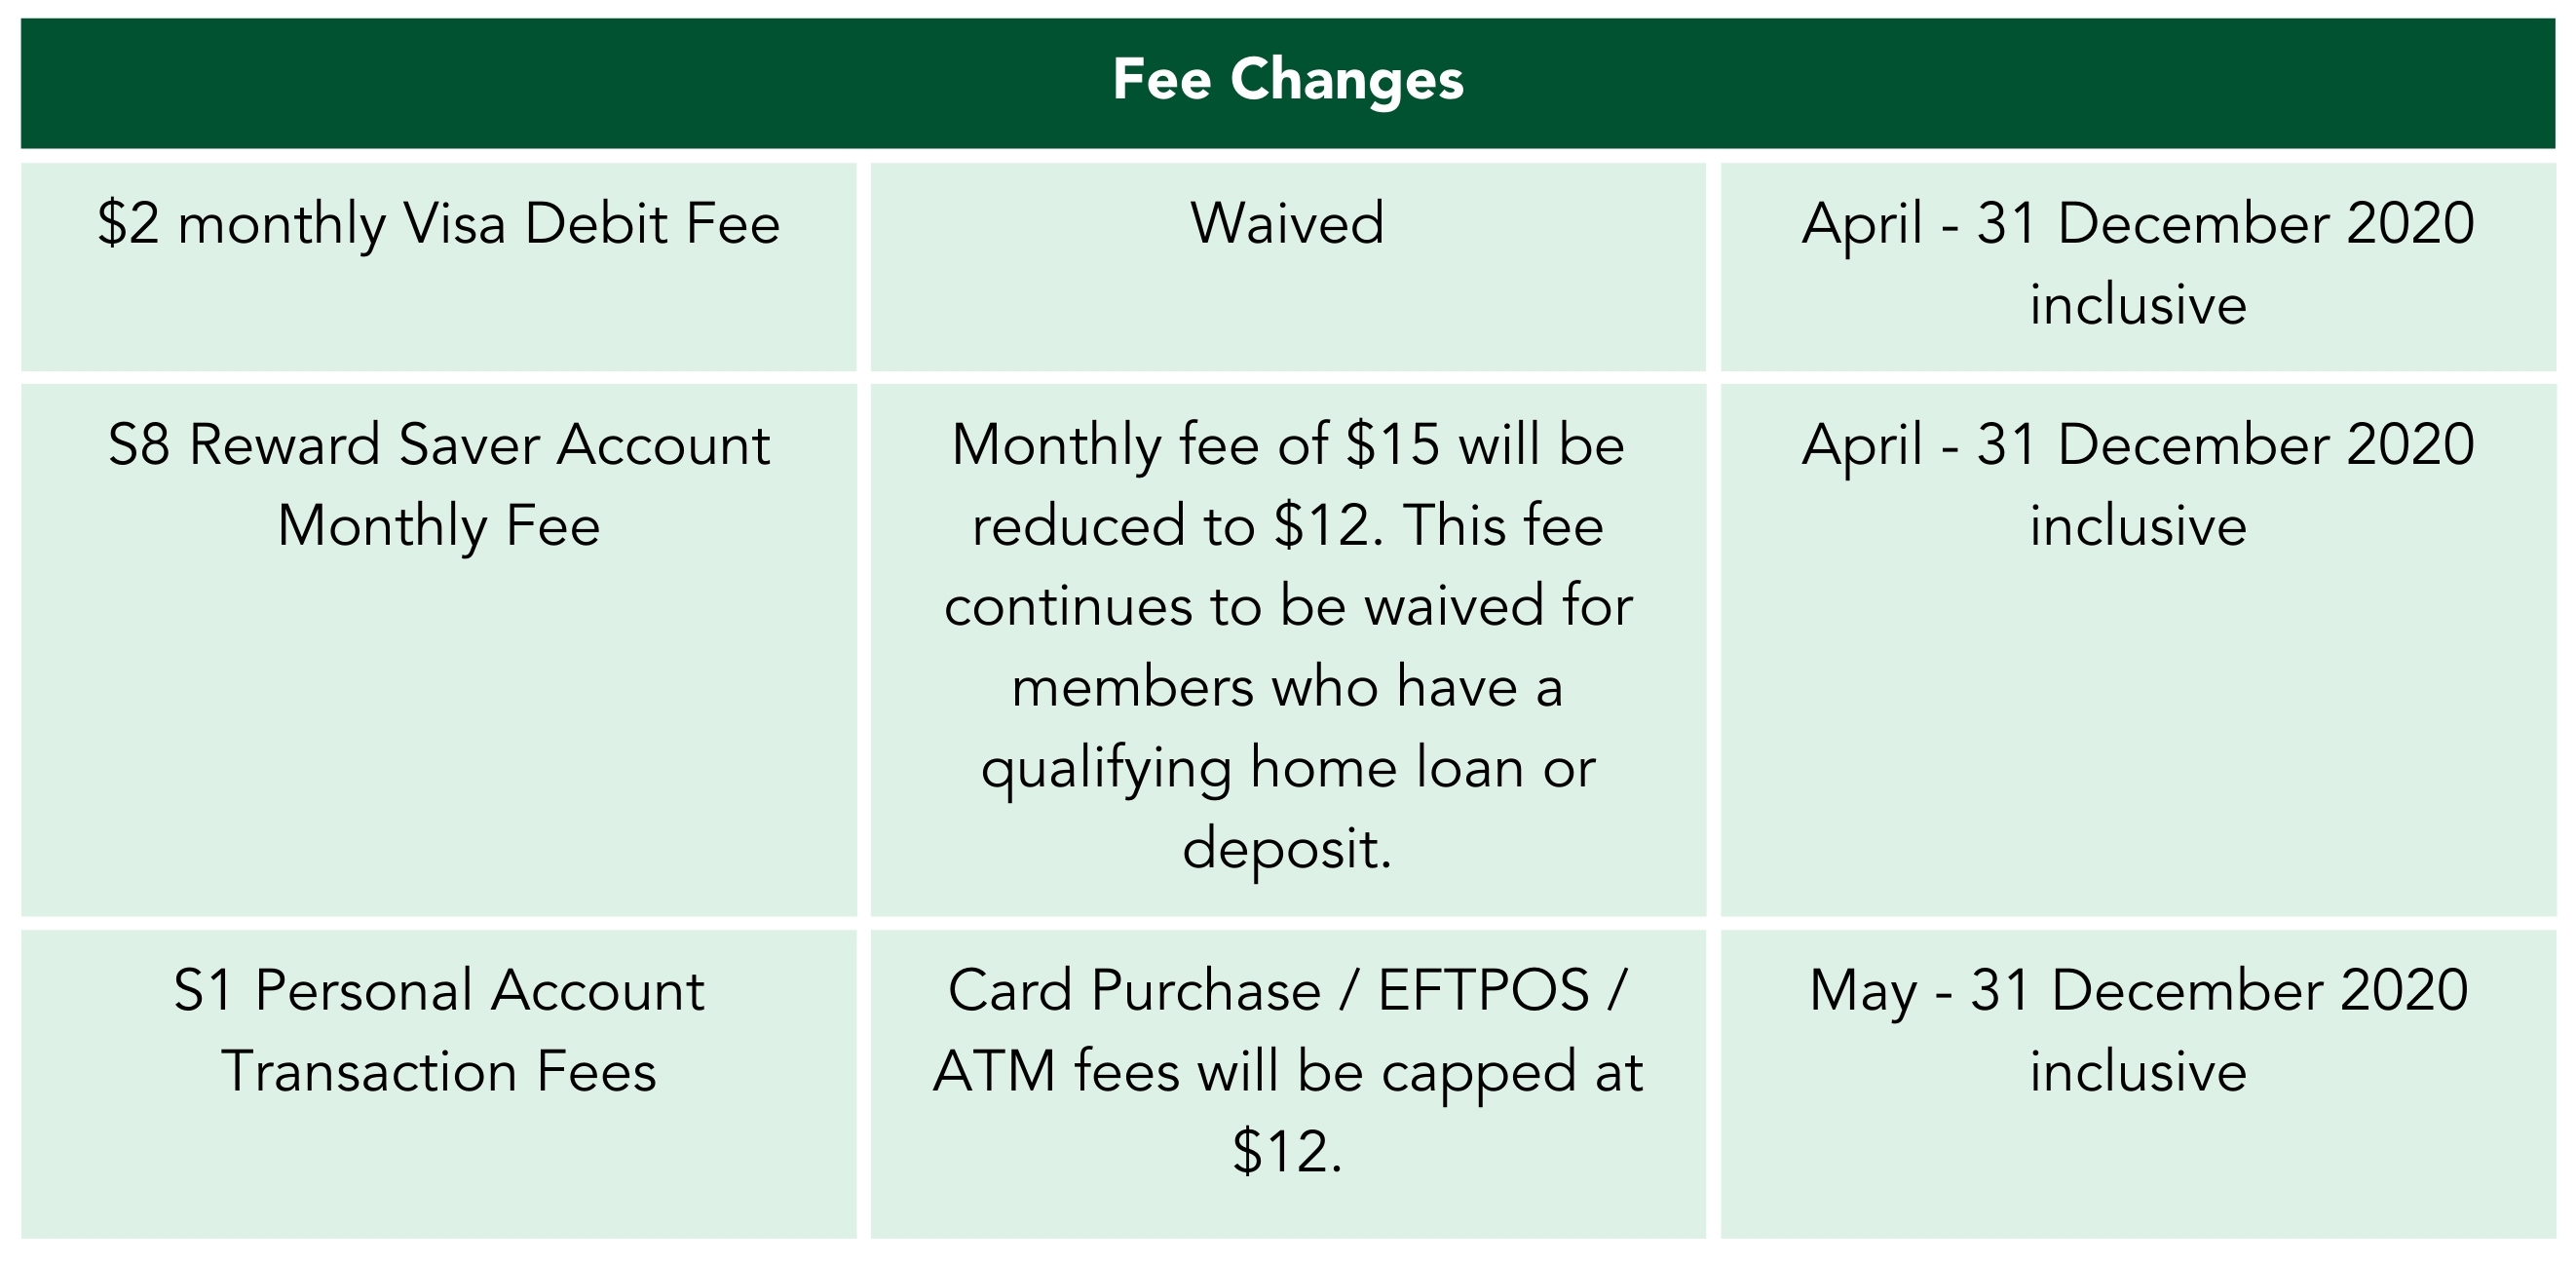 Fee Changes 31 December